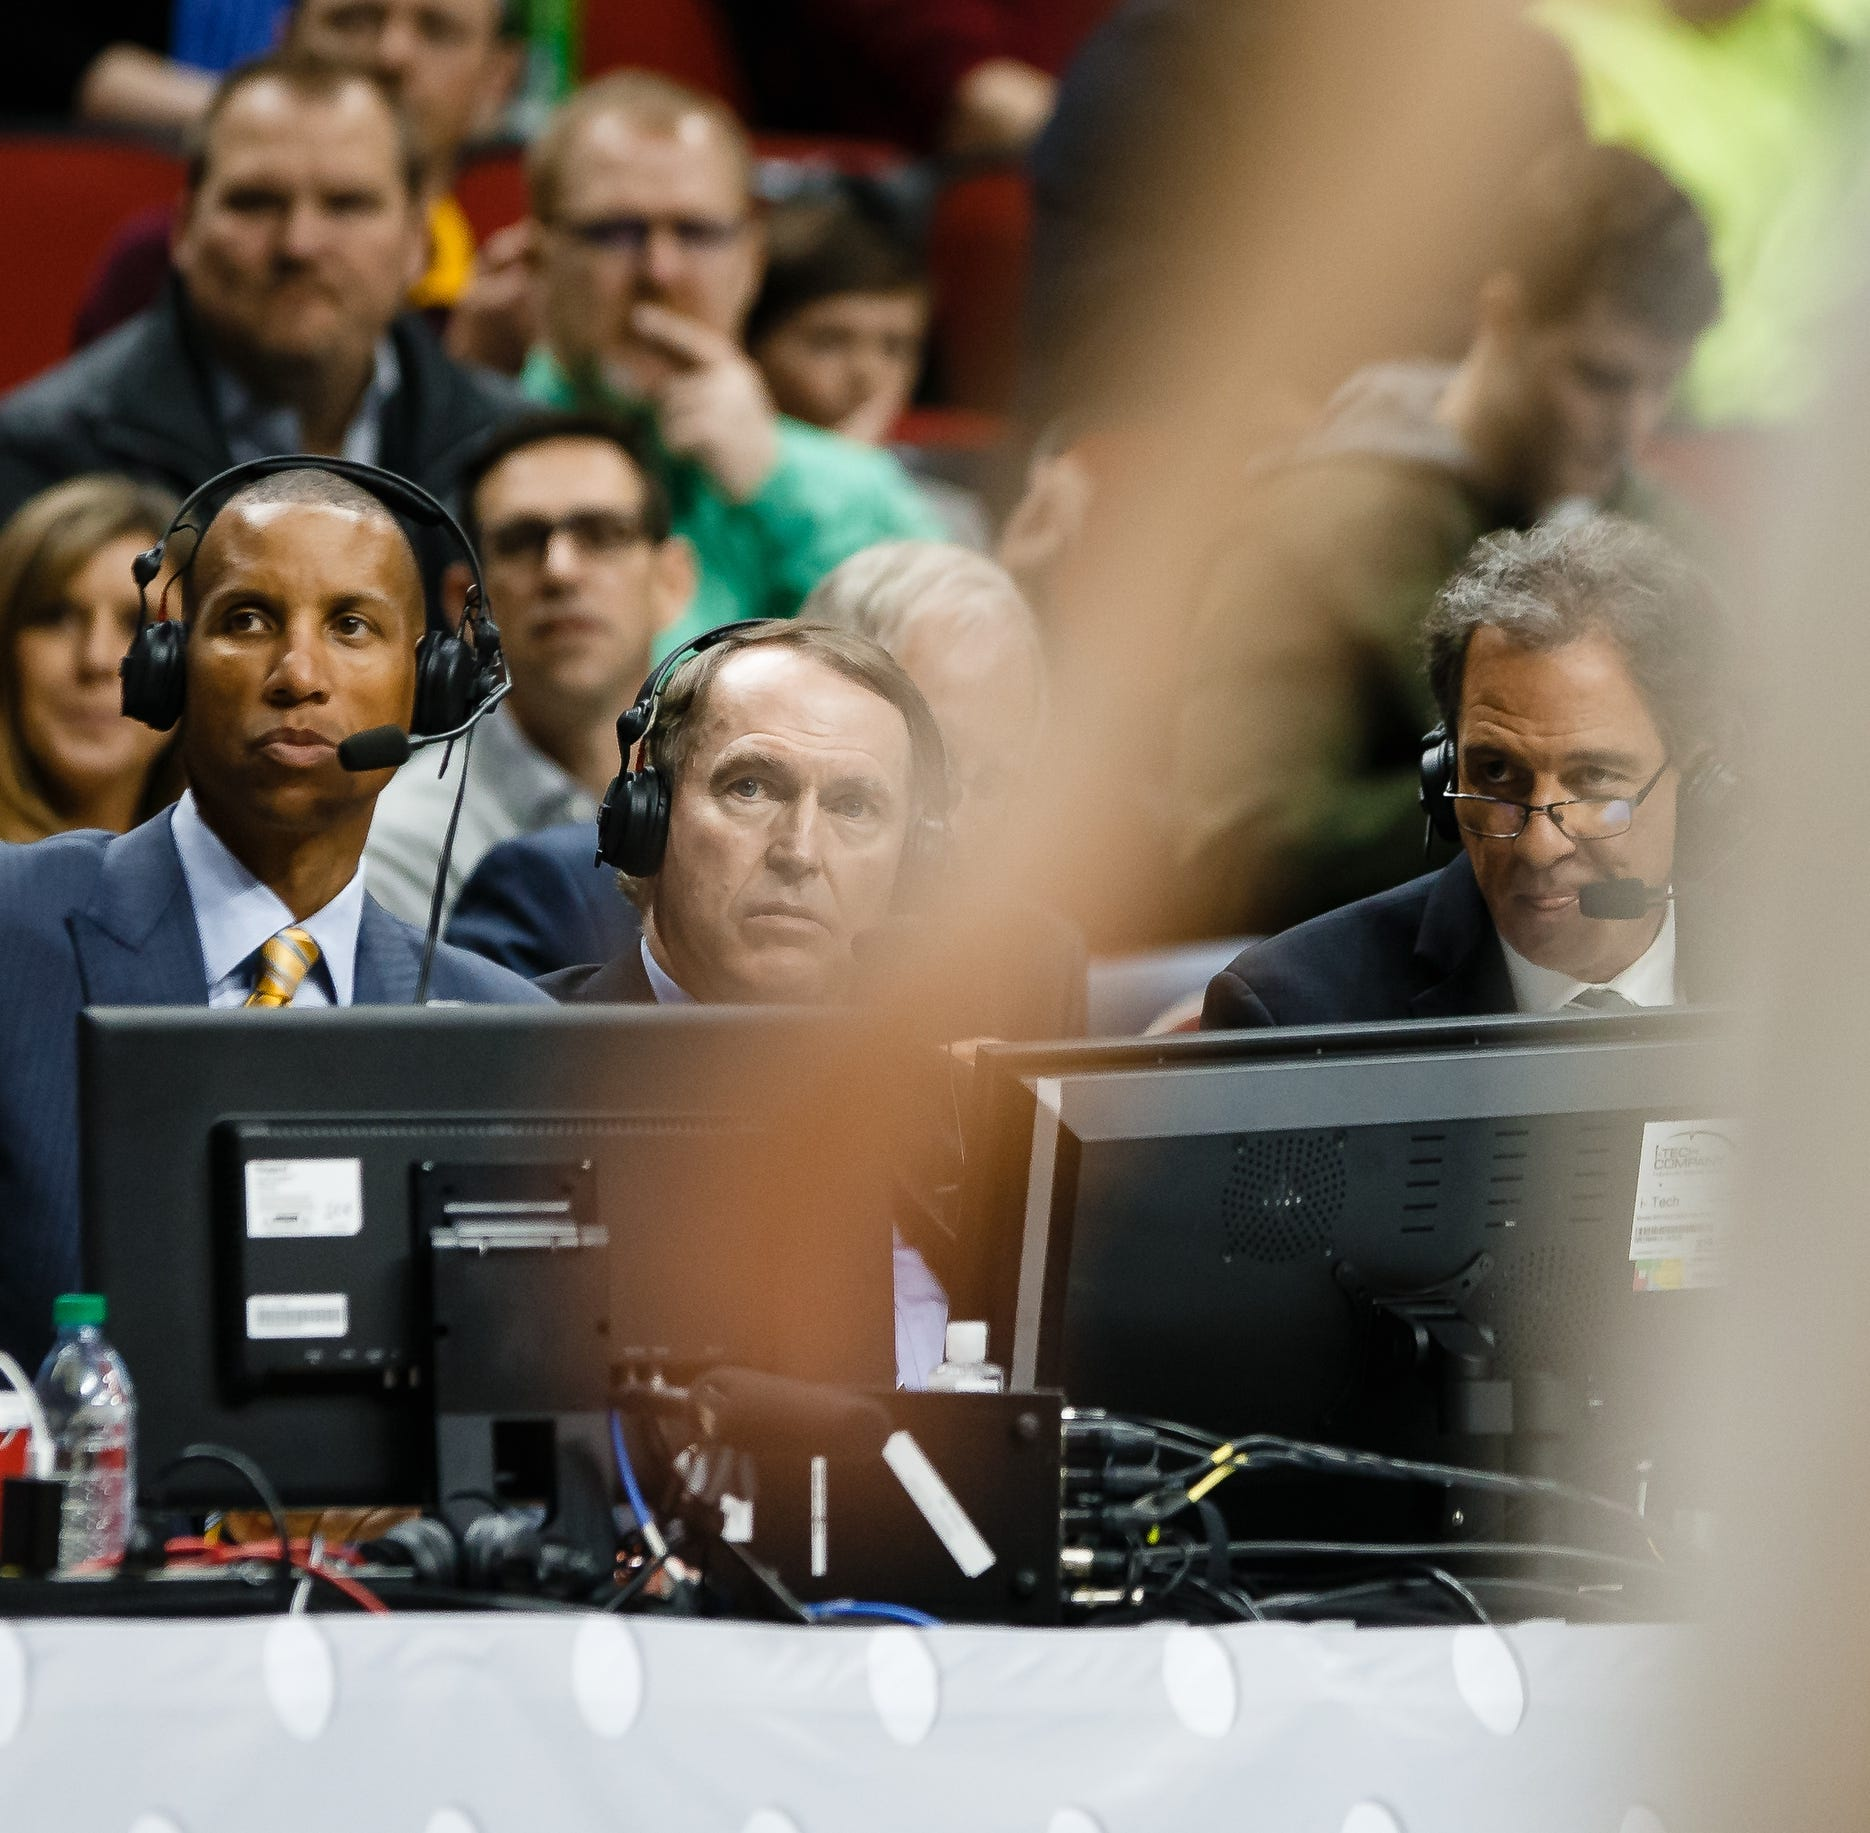 Des Moines reminds Reggie Miller of one of his favorite places in the world